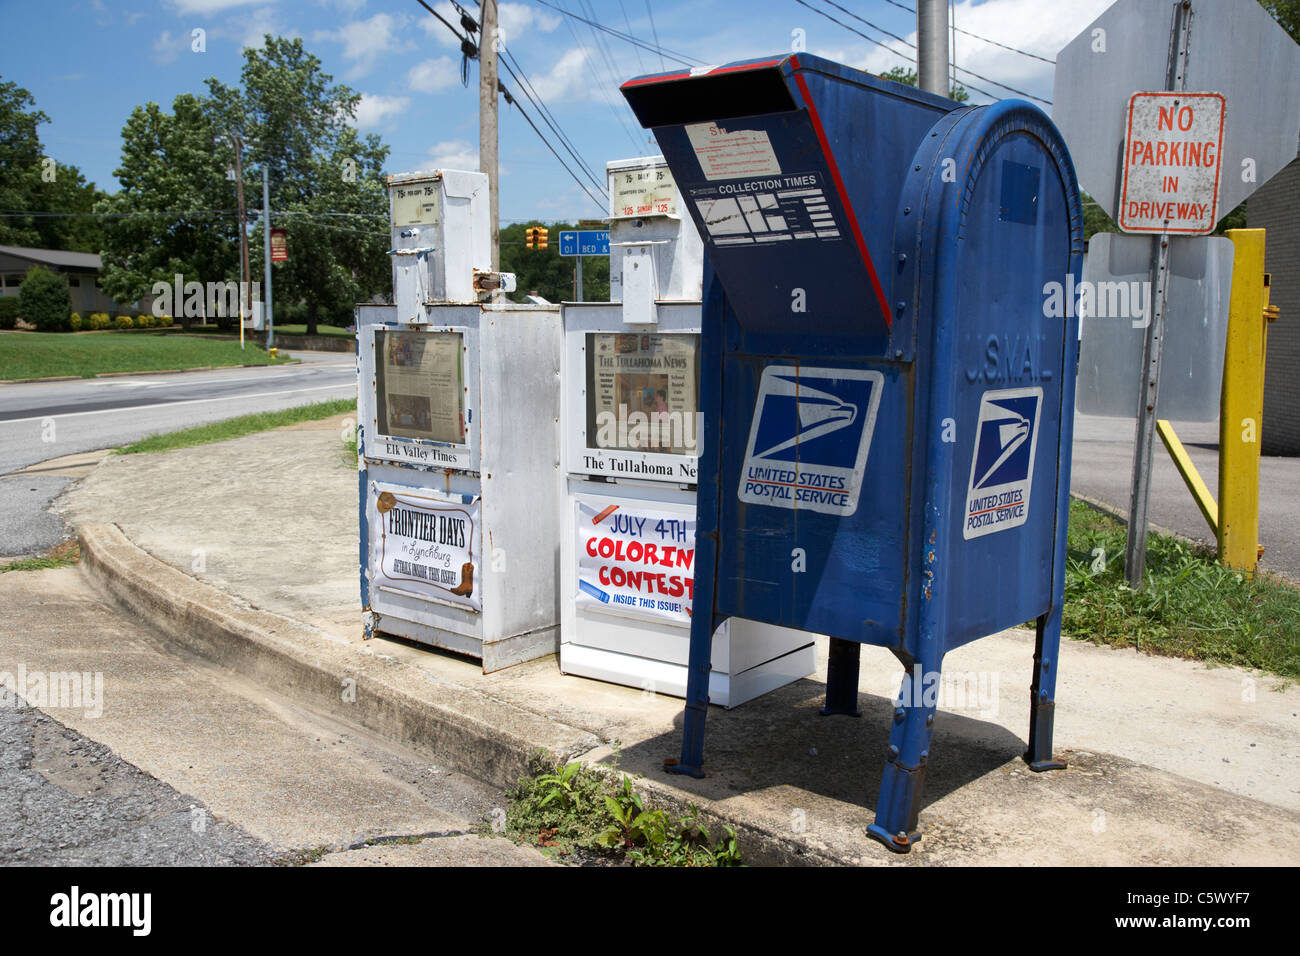 american usps united states postal service mailbox and newspaper boxes in Lynchburg , tennessee , usa - Stock Image